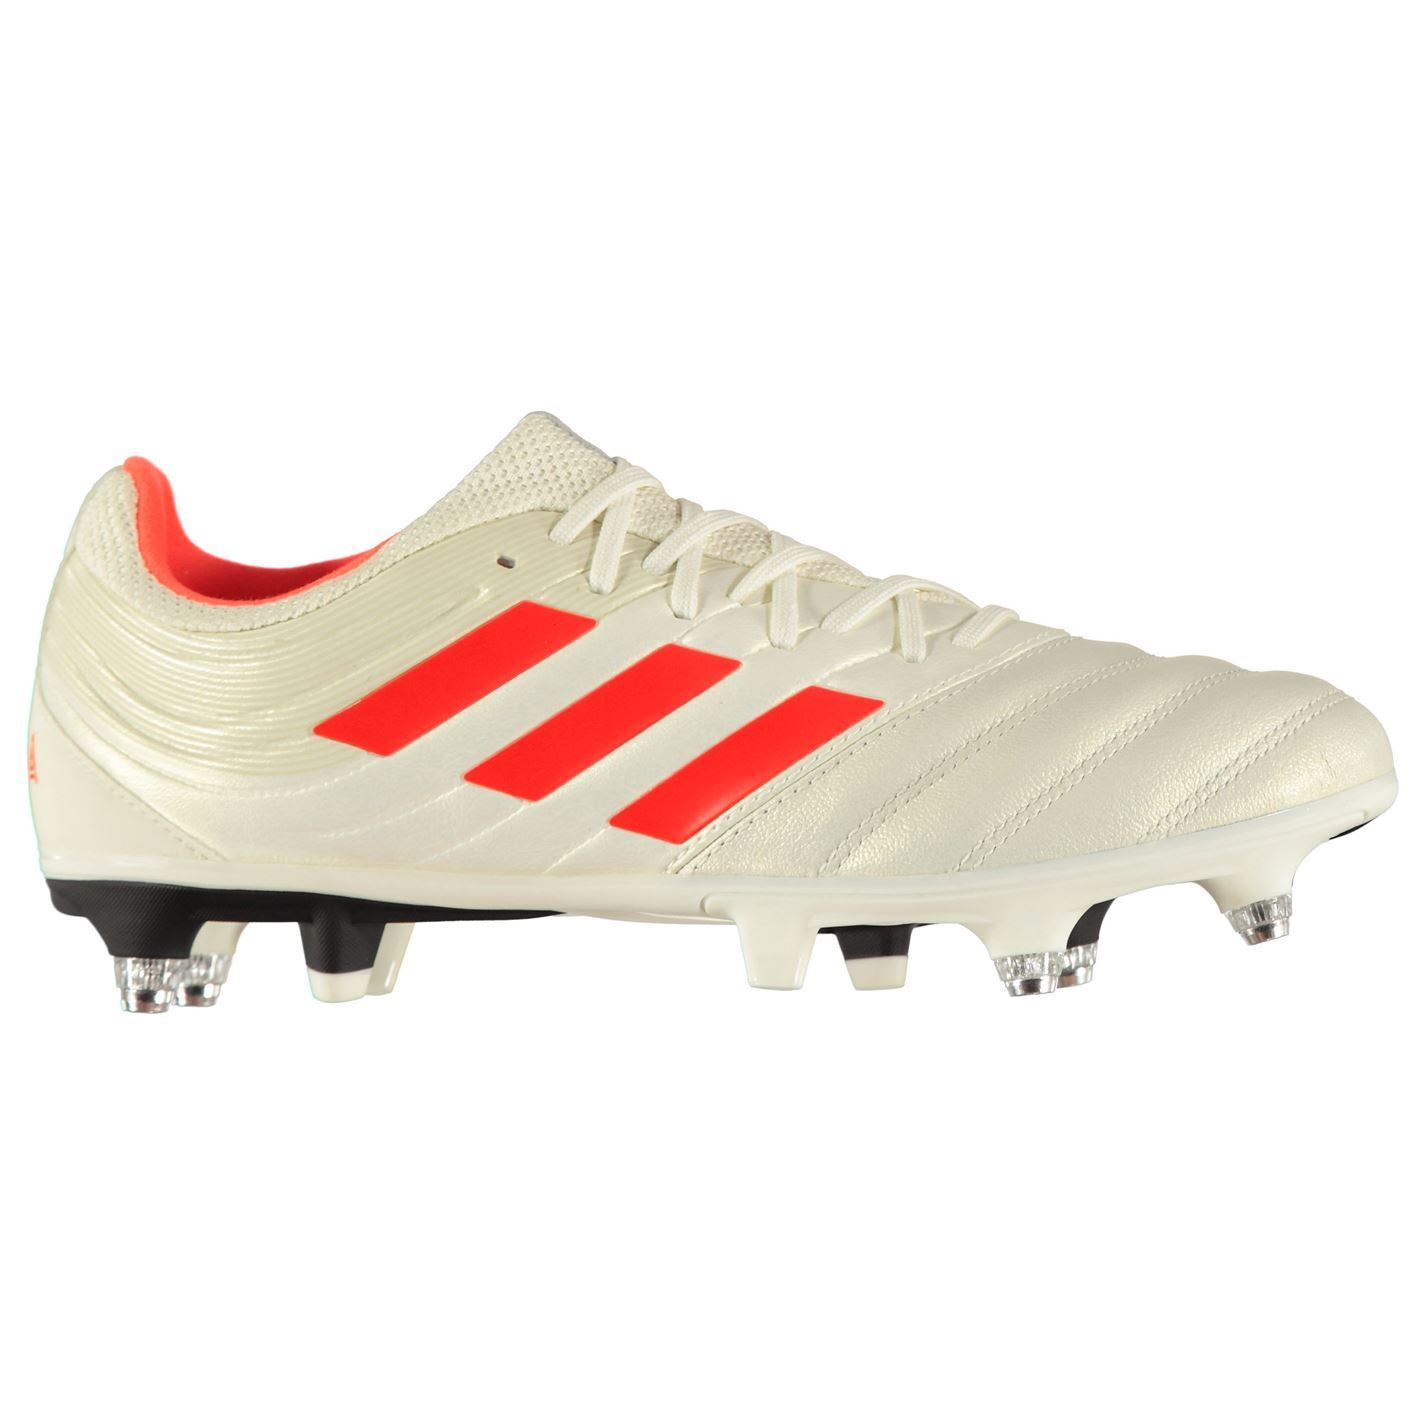 cc90b256bb Details about adidas Copa 19.3 SG Soft Ground Football Boots Mens White/Red  Soccer Shoe Cleats